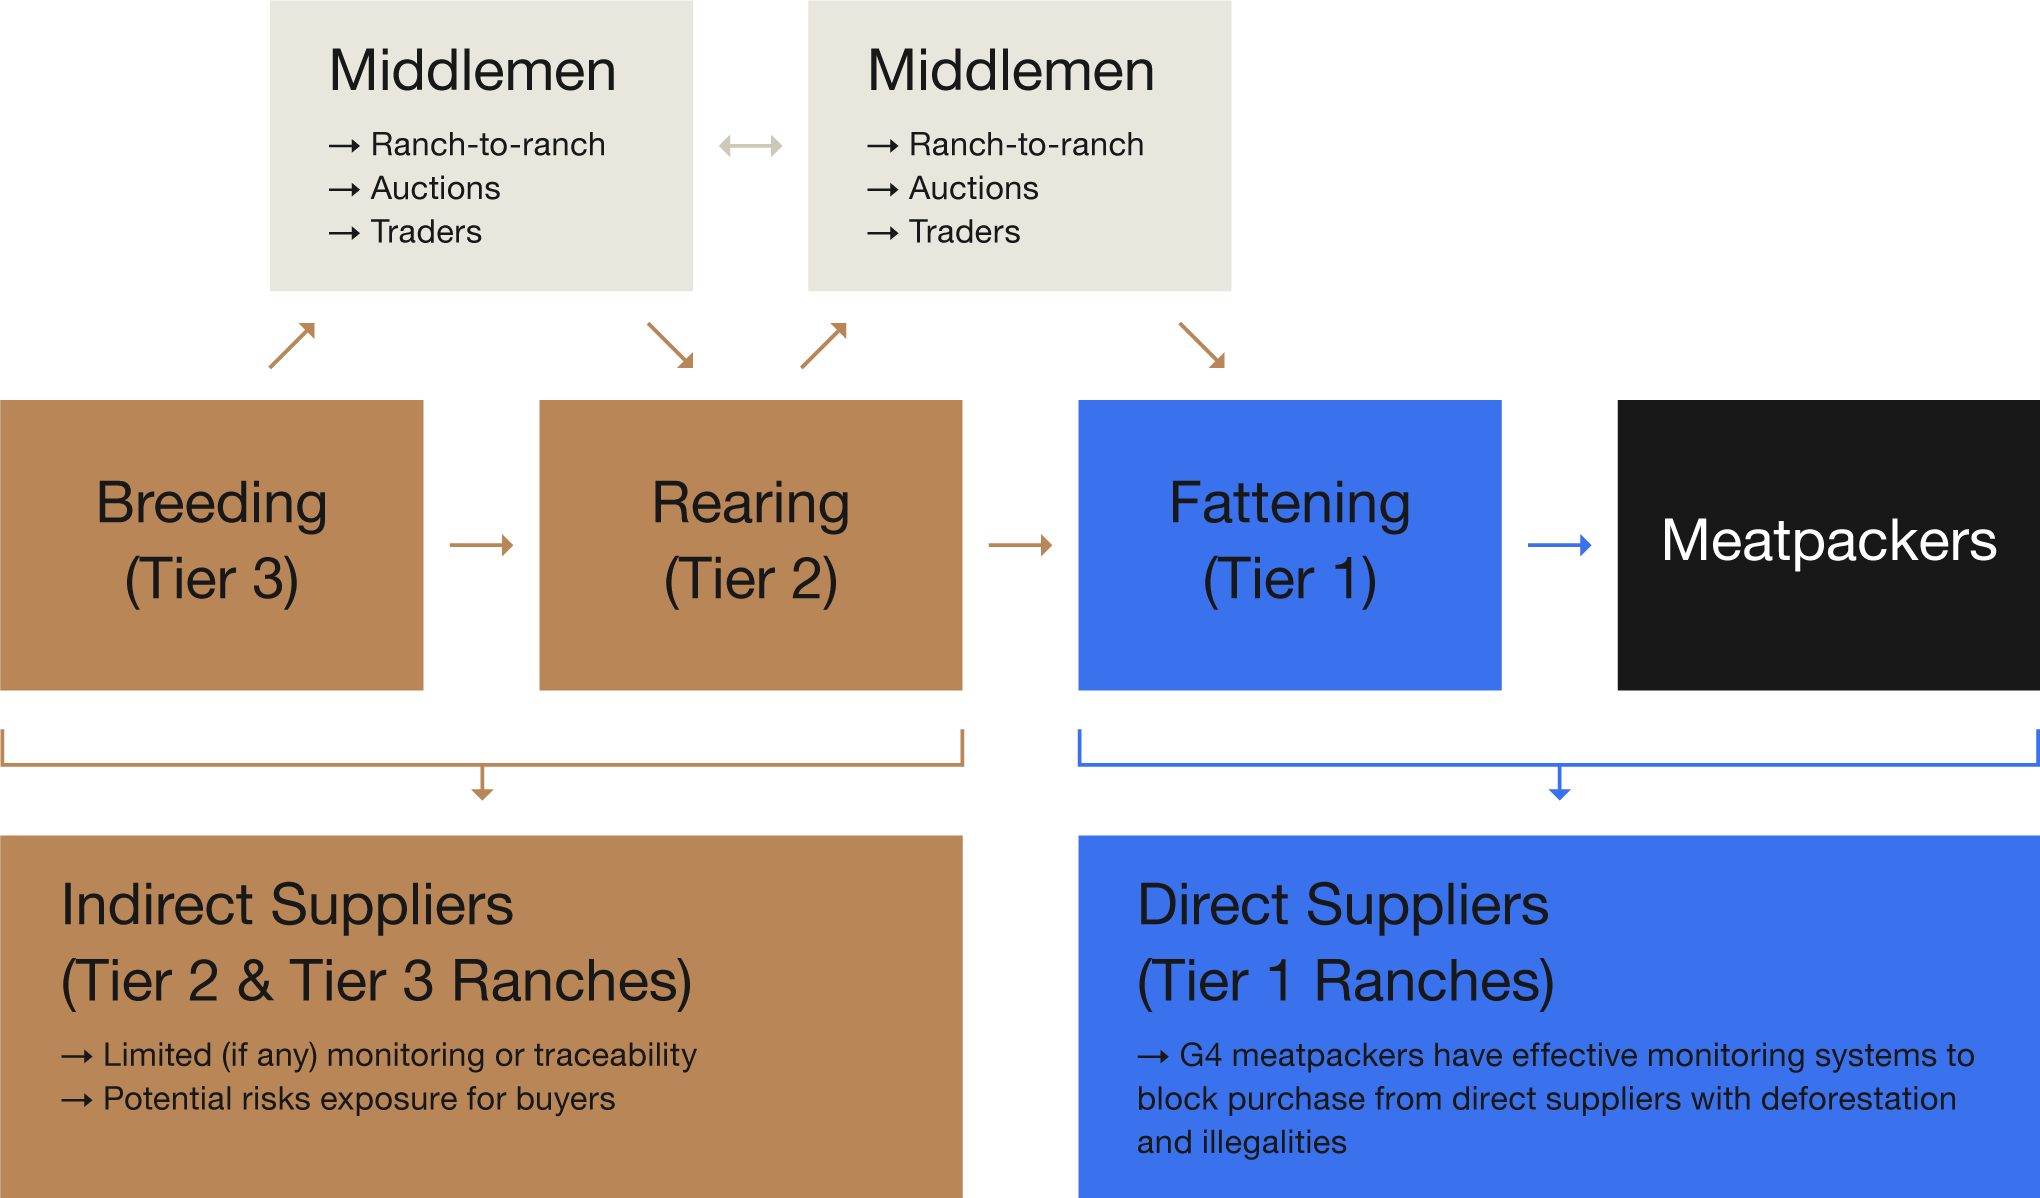 Flow-Direct-vs.-Indirect-Suppliers-1